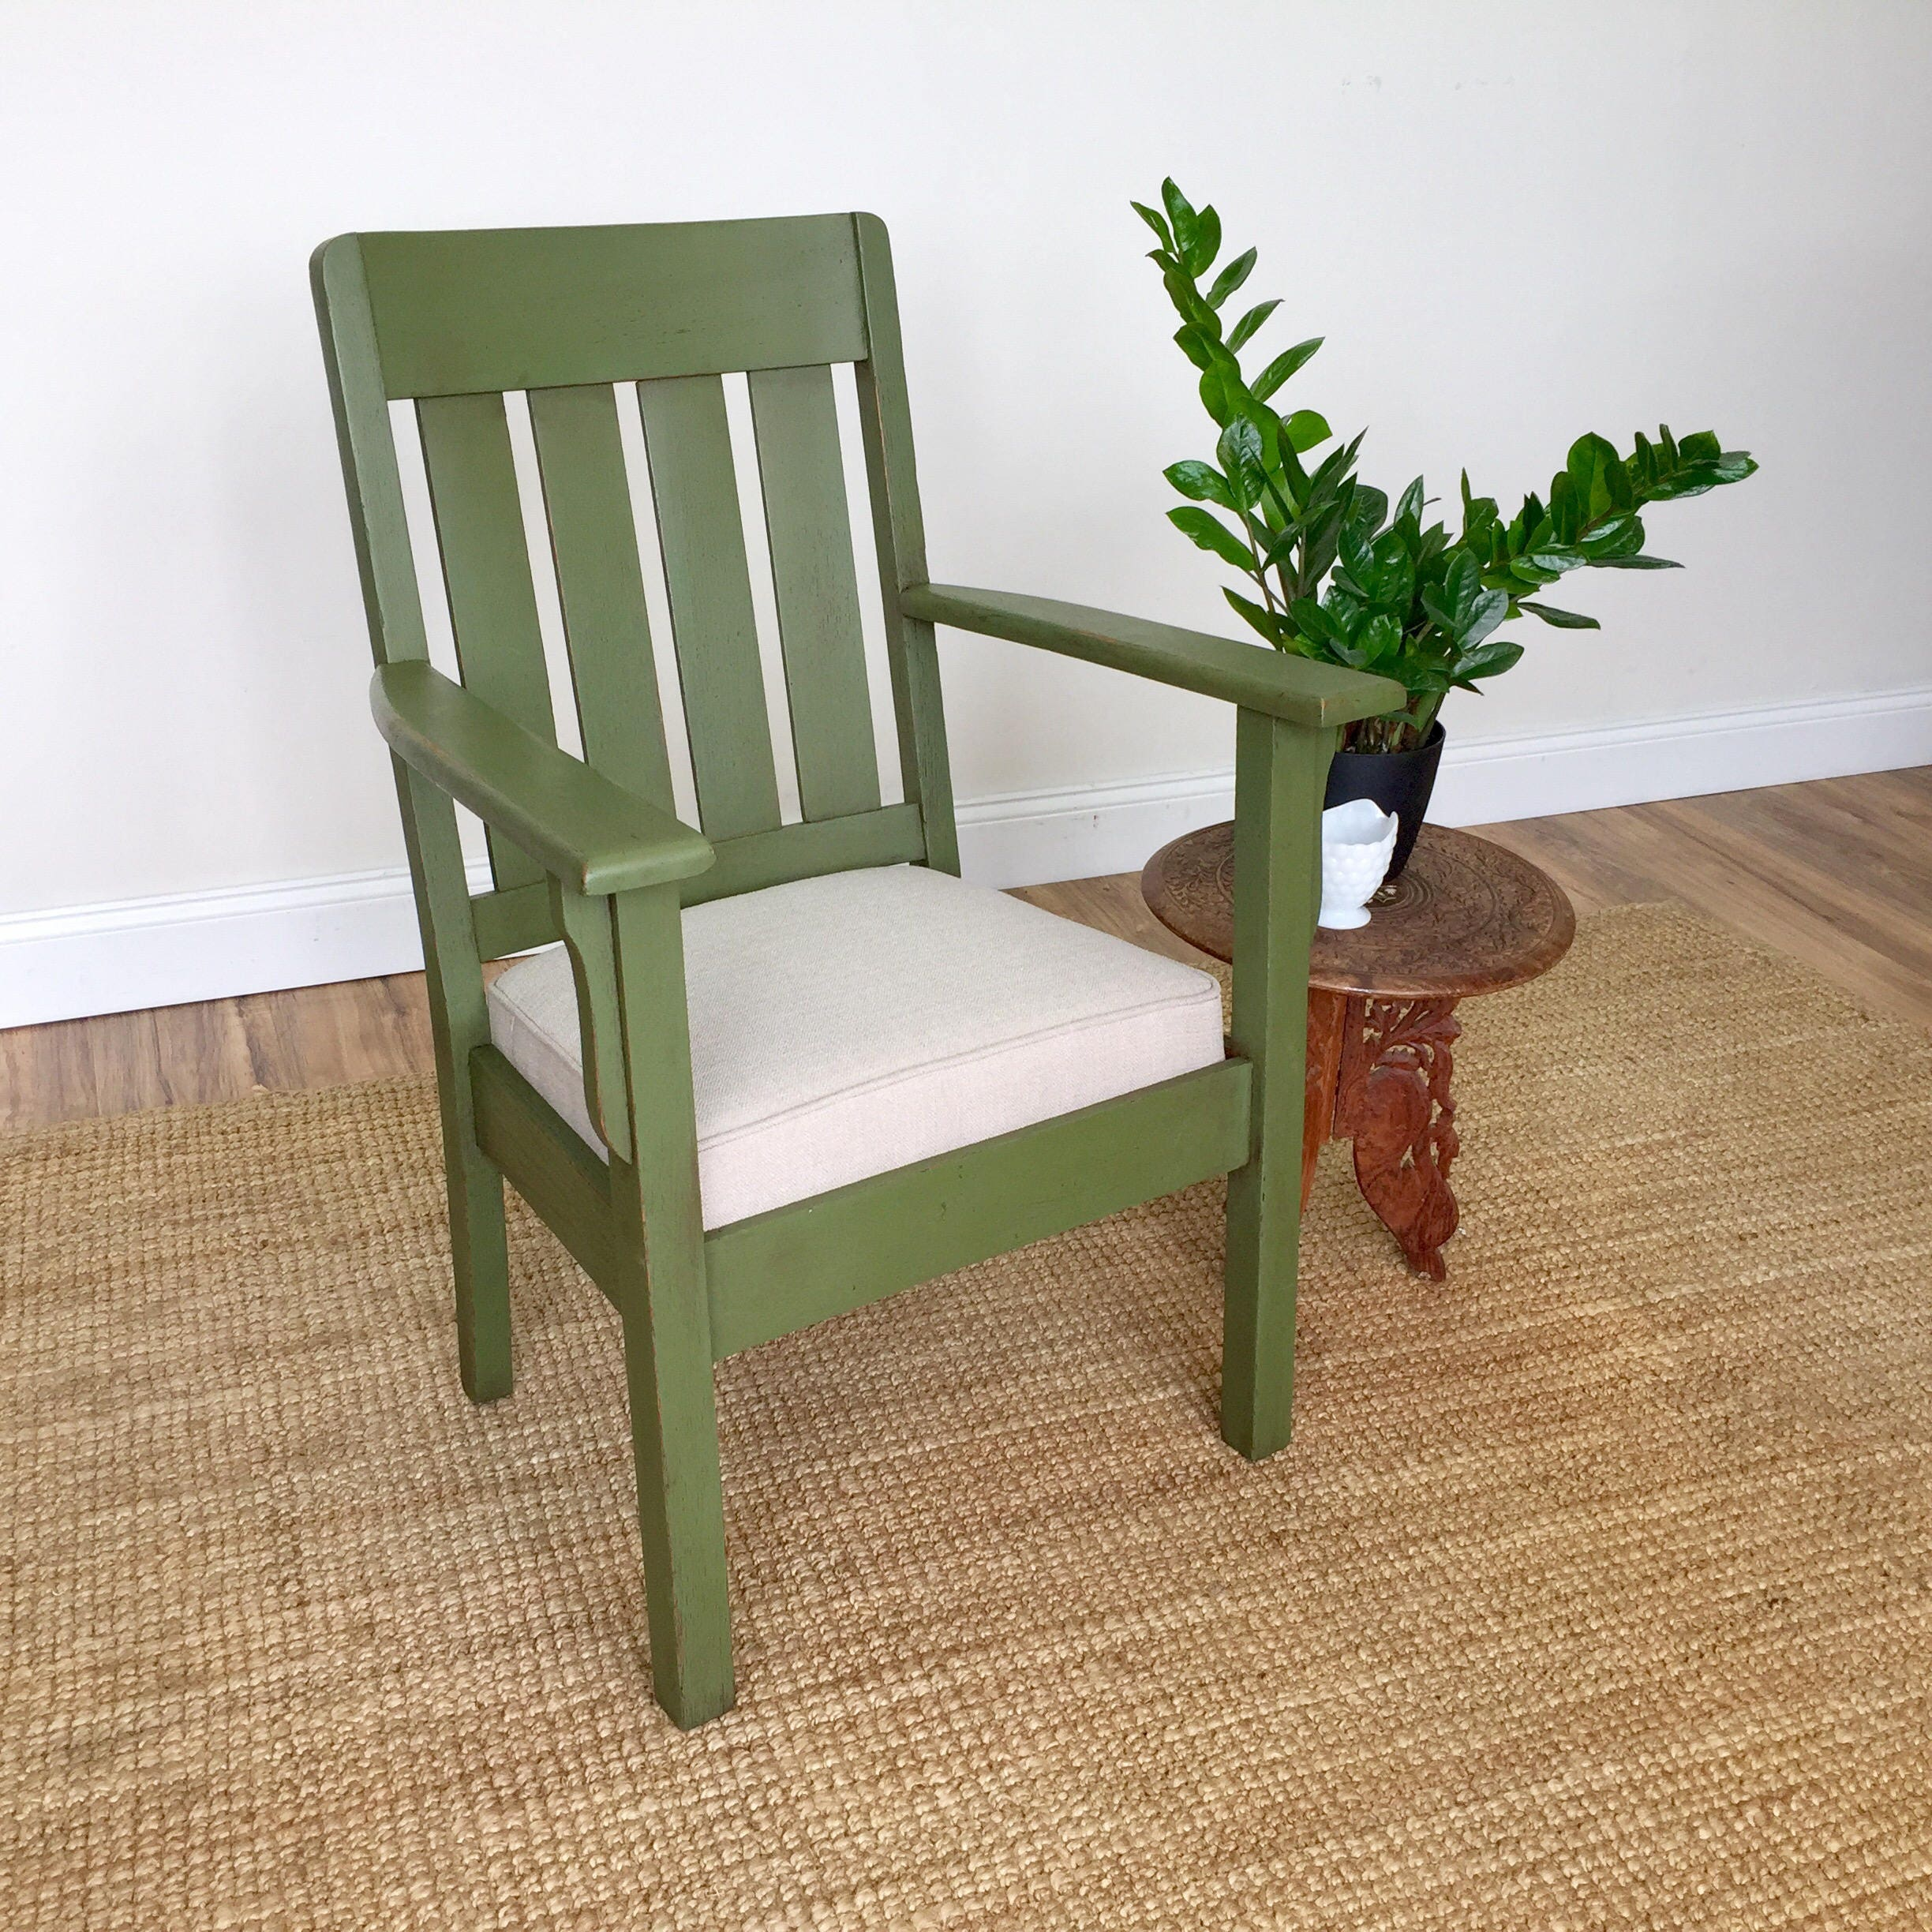 craftman furniture. Green Armchair - Mission Furniture Vintage Office Chair Occasional Arts And Crafts Style Antique Wooden Chair, Craftsman Craftman